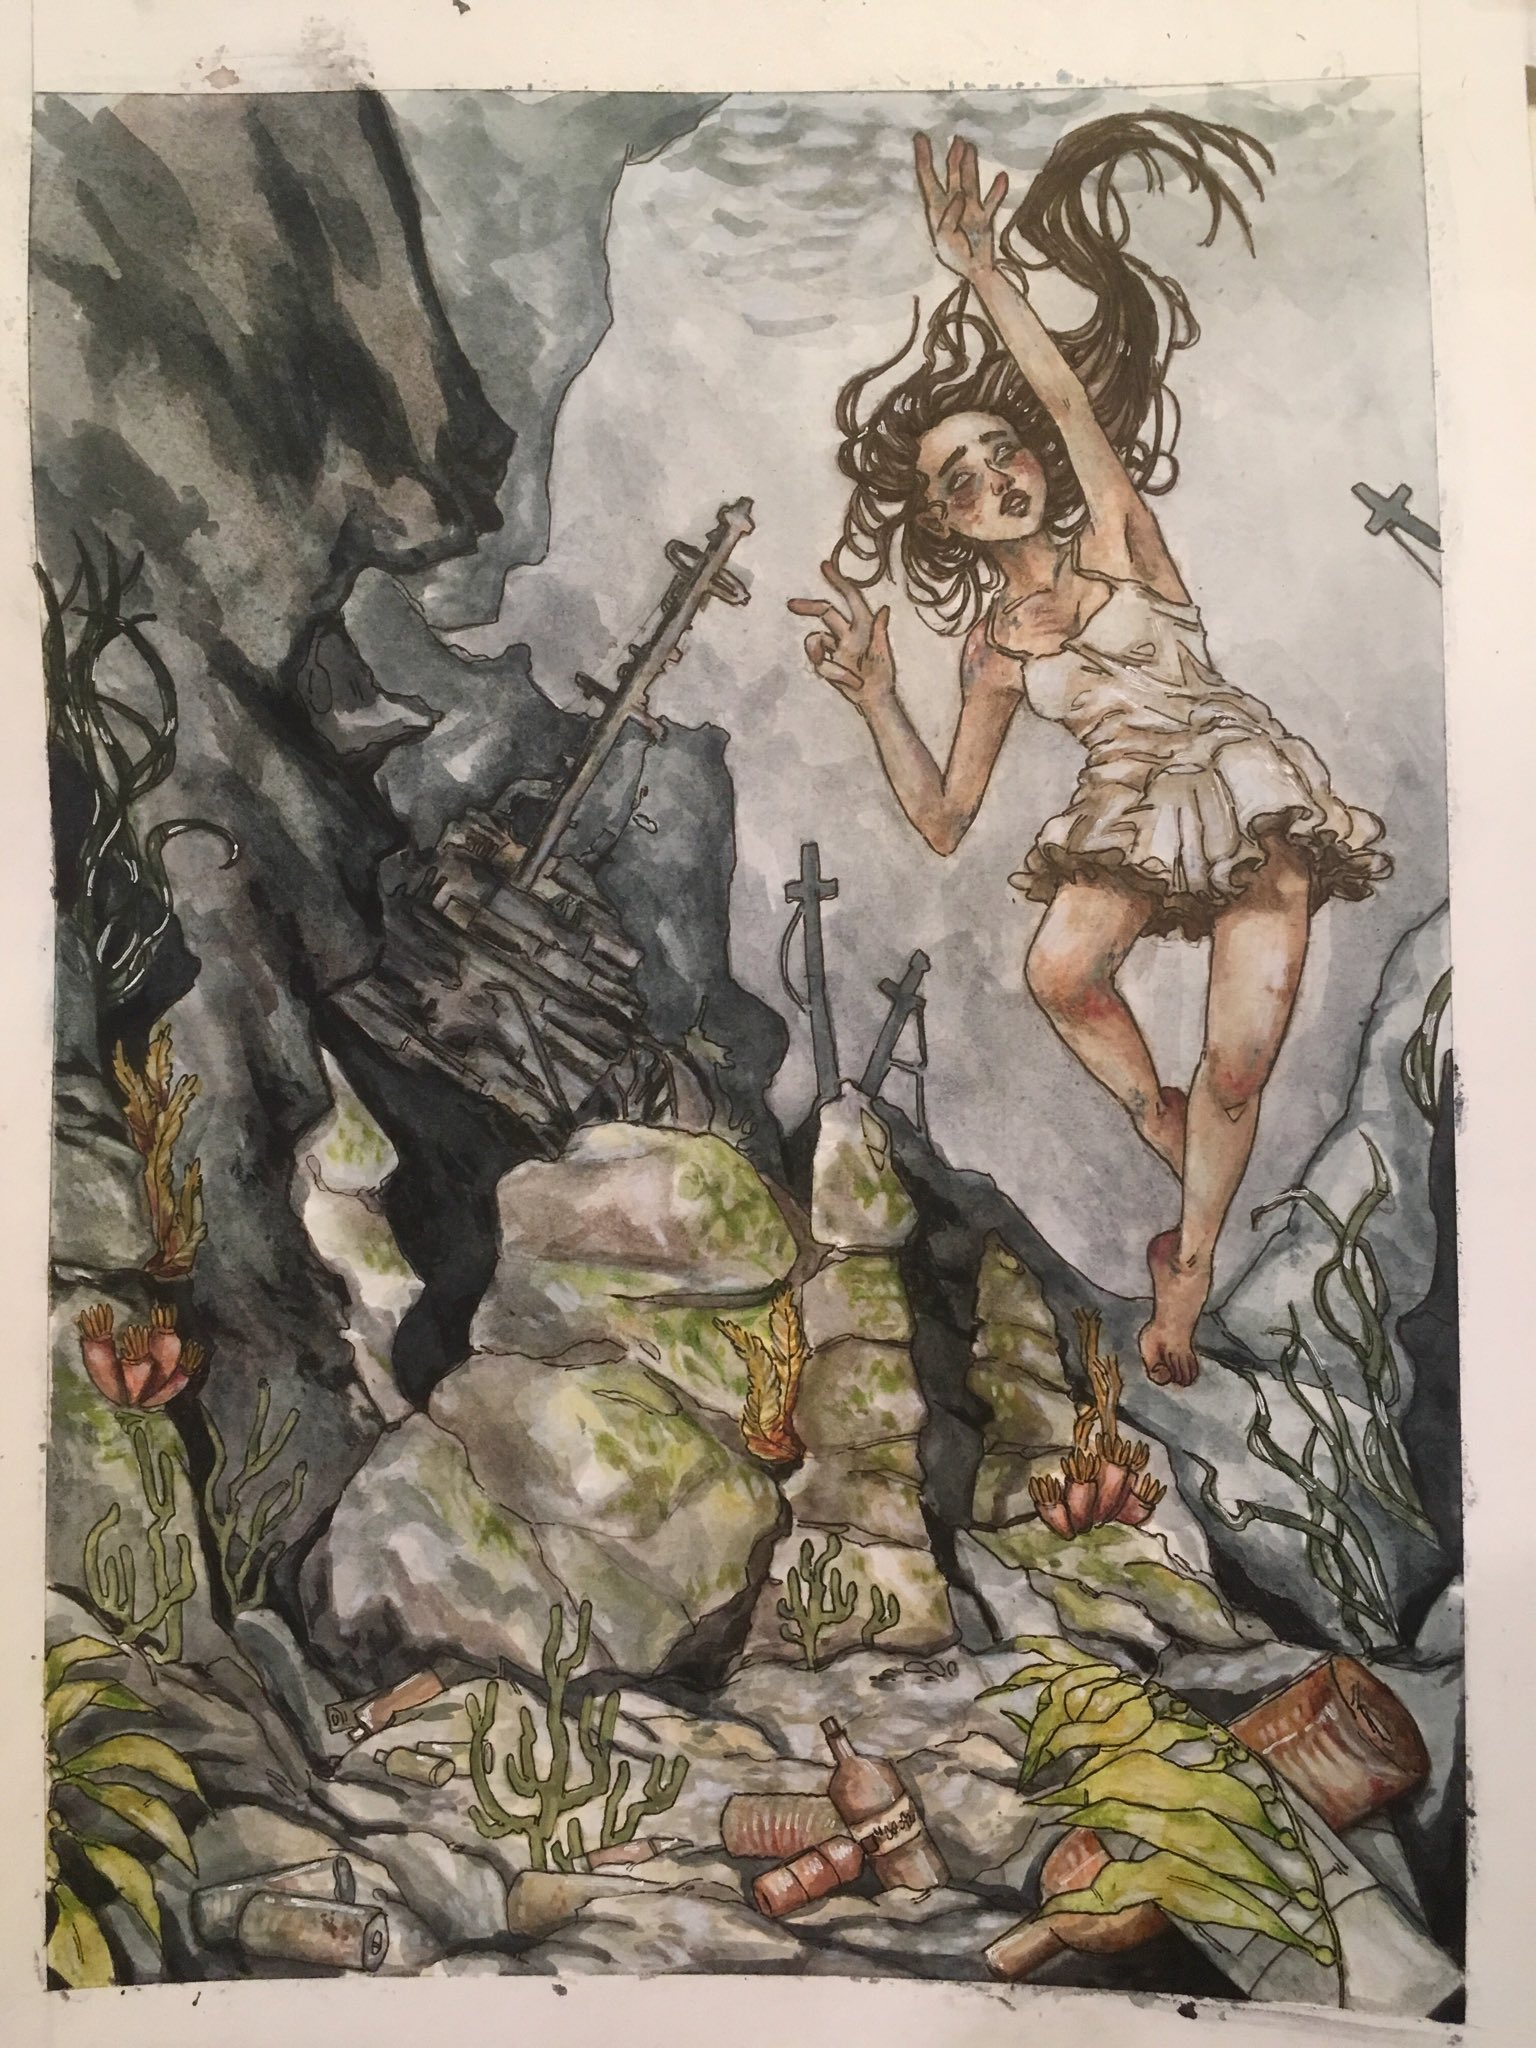 Painting of girl dorwning in the sea with rocks around her and a sword floating near her.